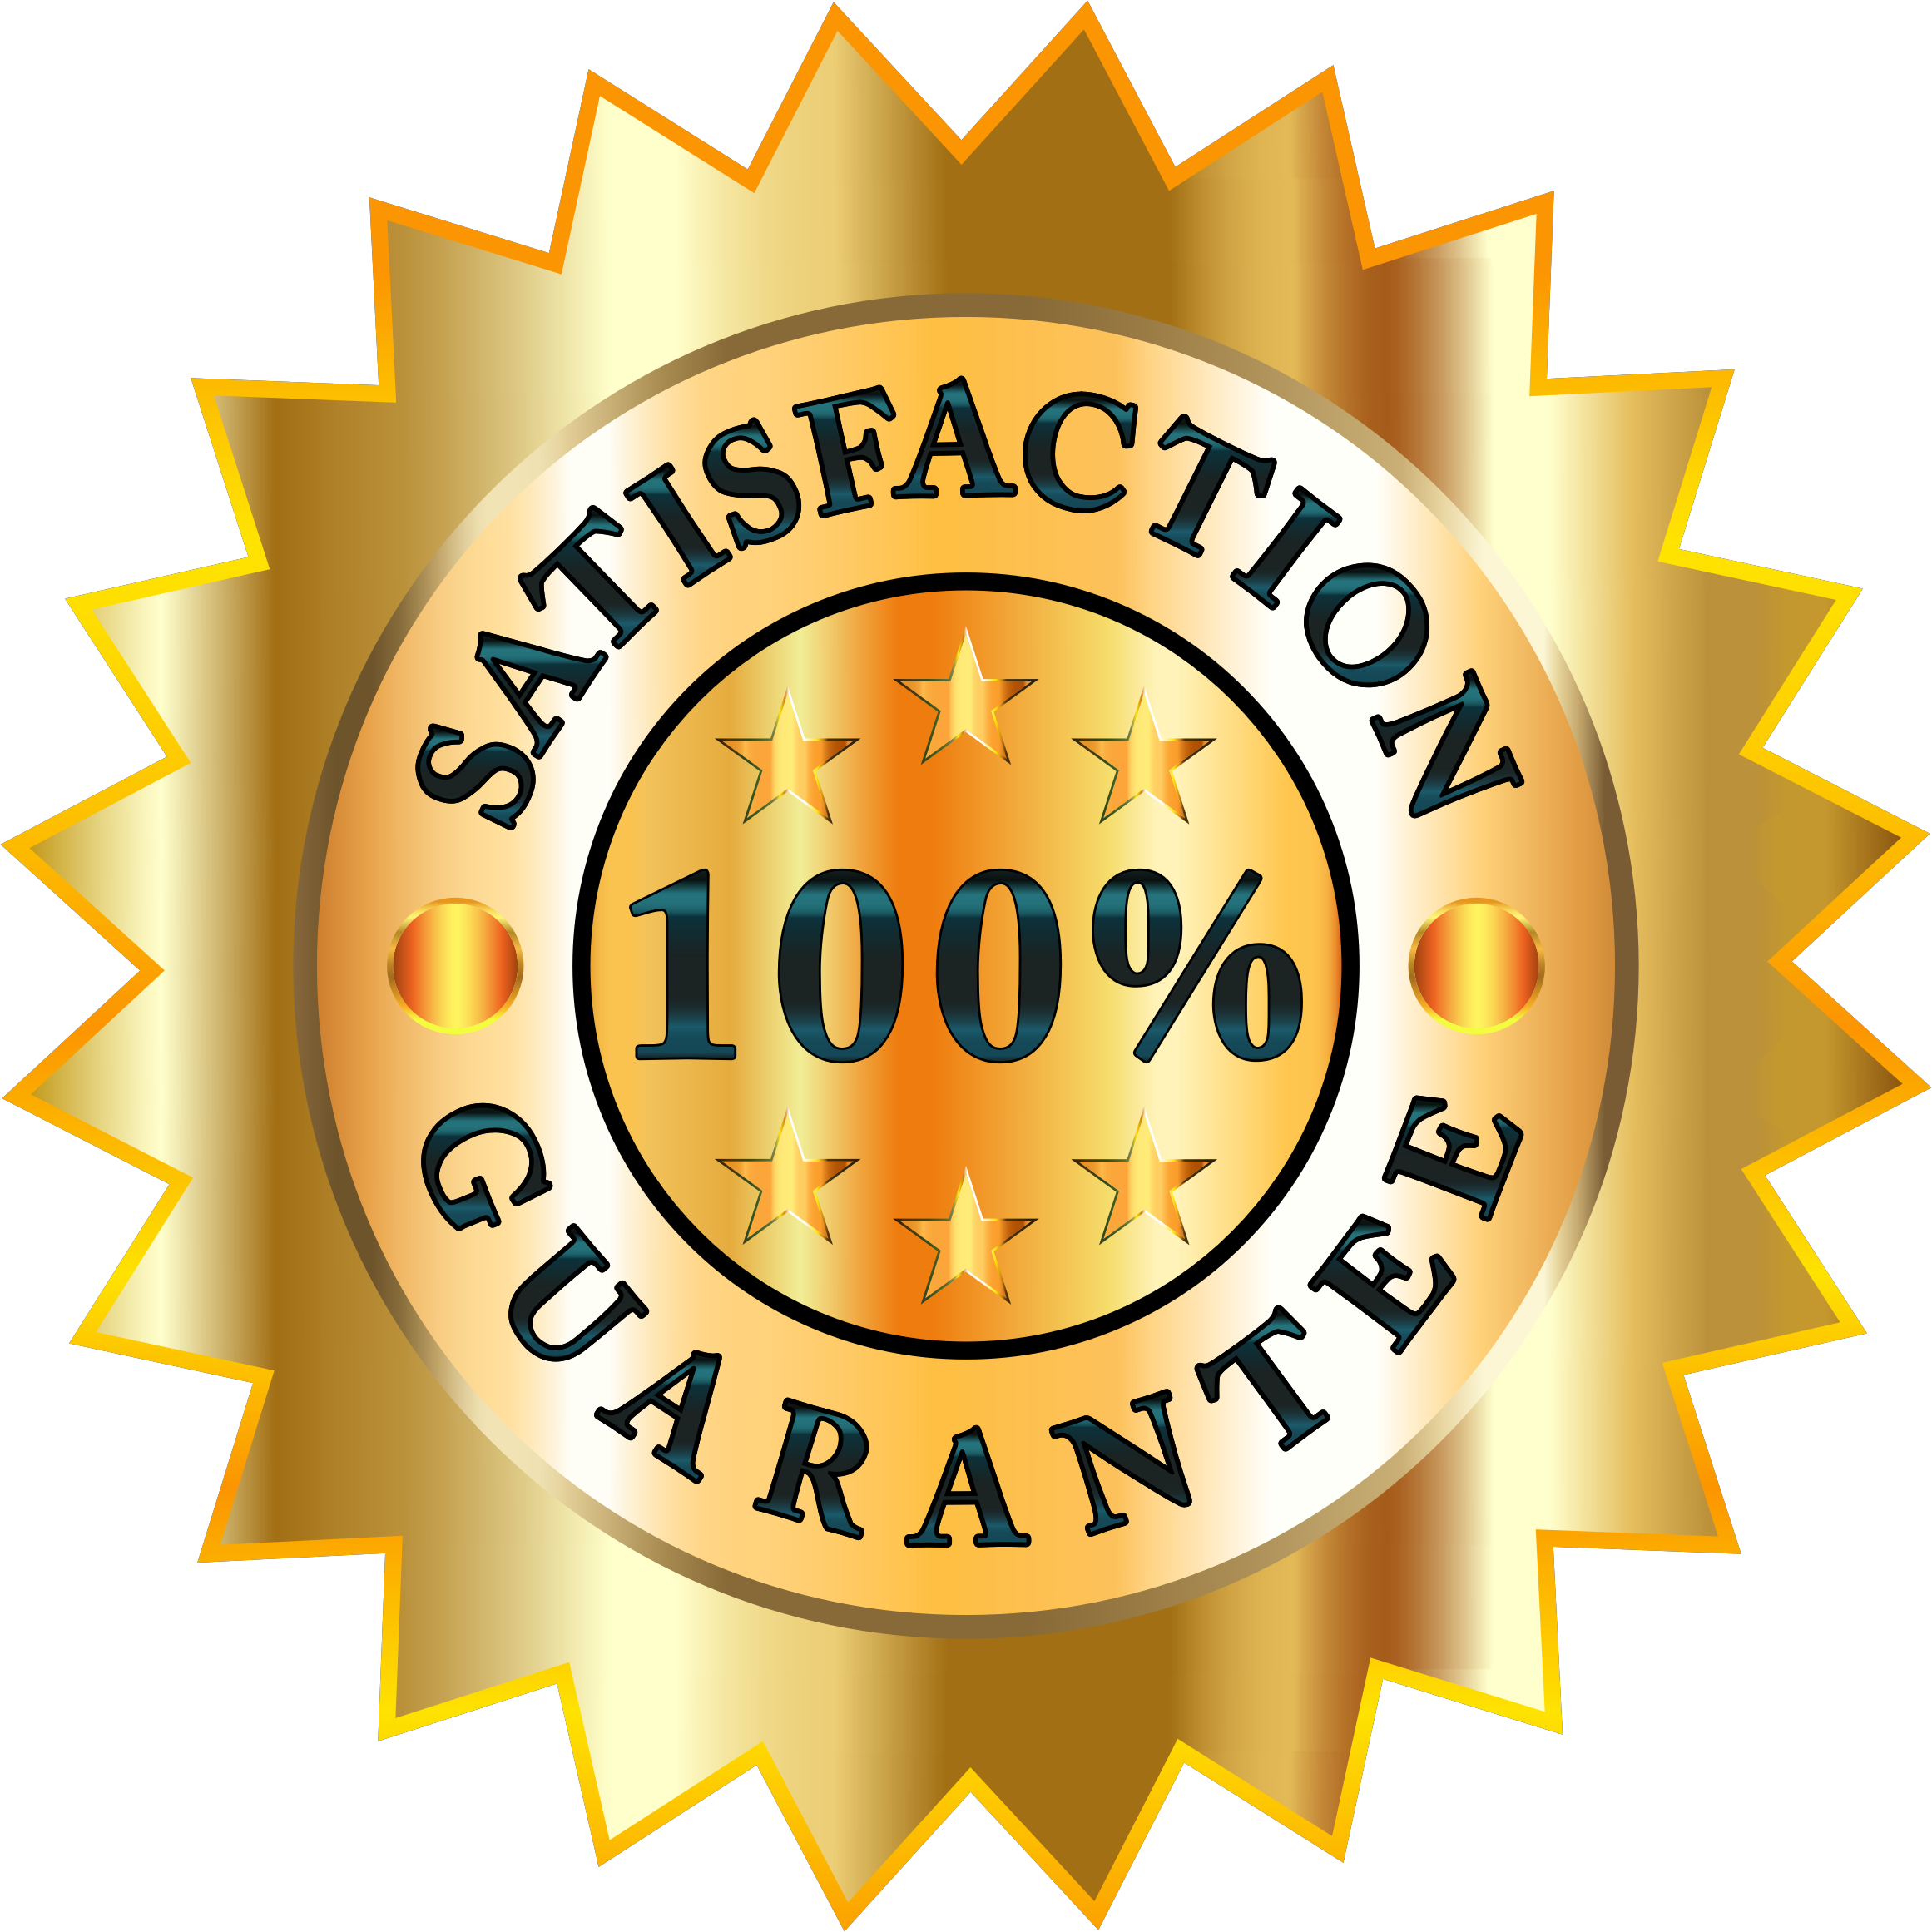 Satisfaction badge big image. Stamp clipart guarantee